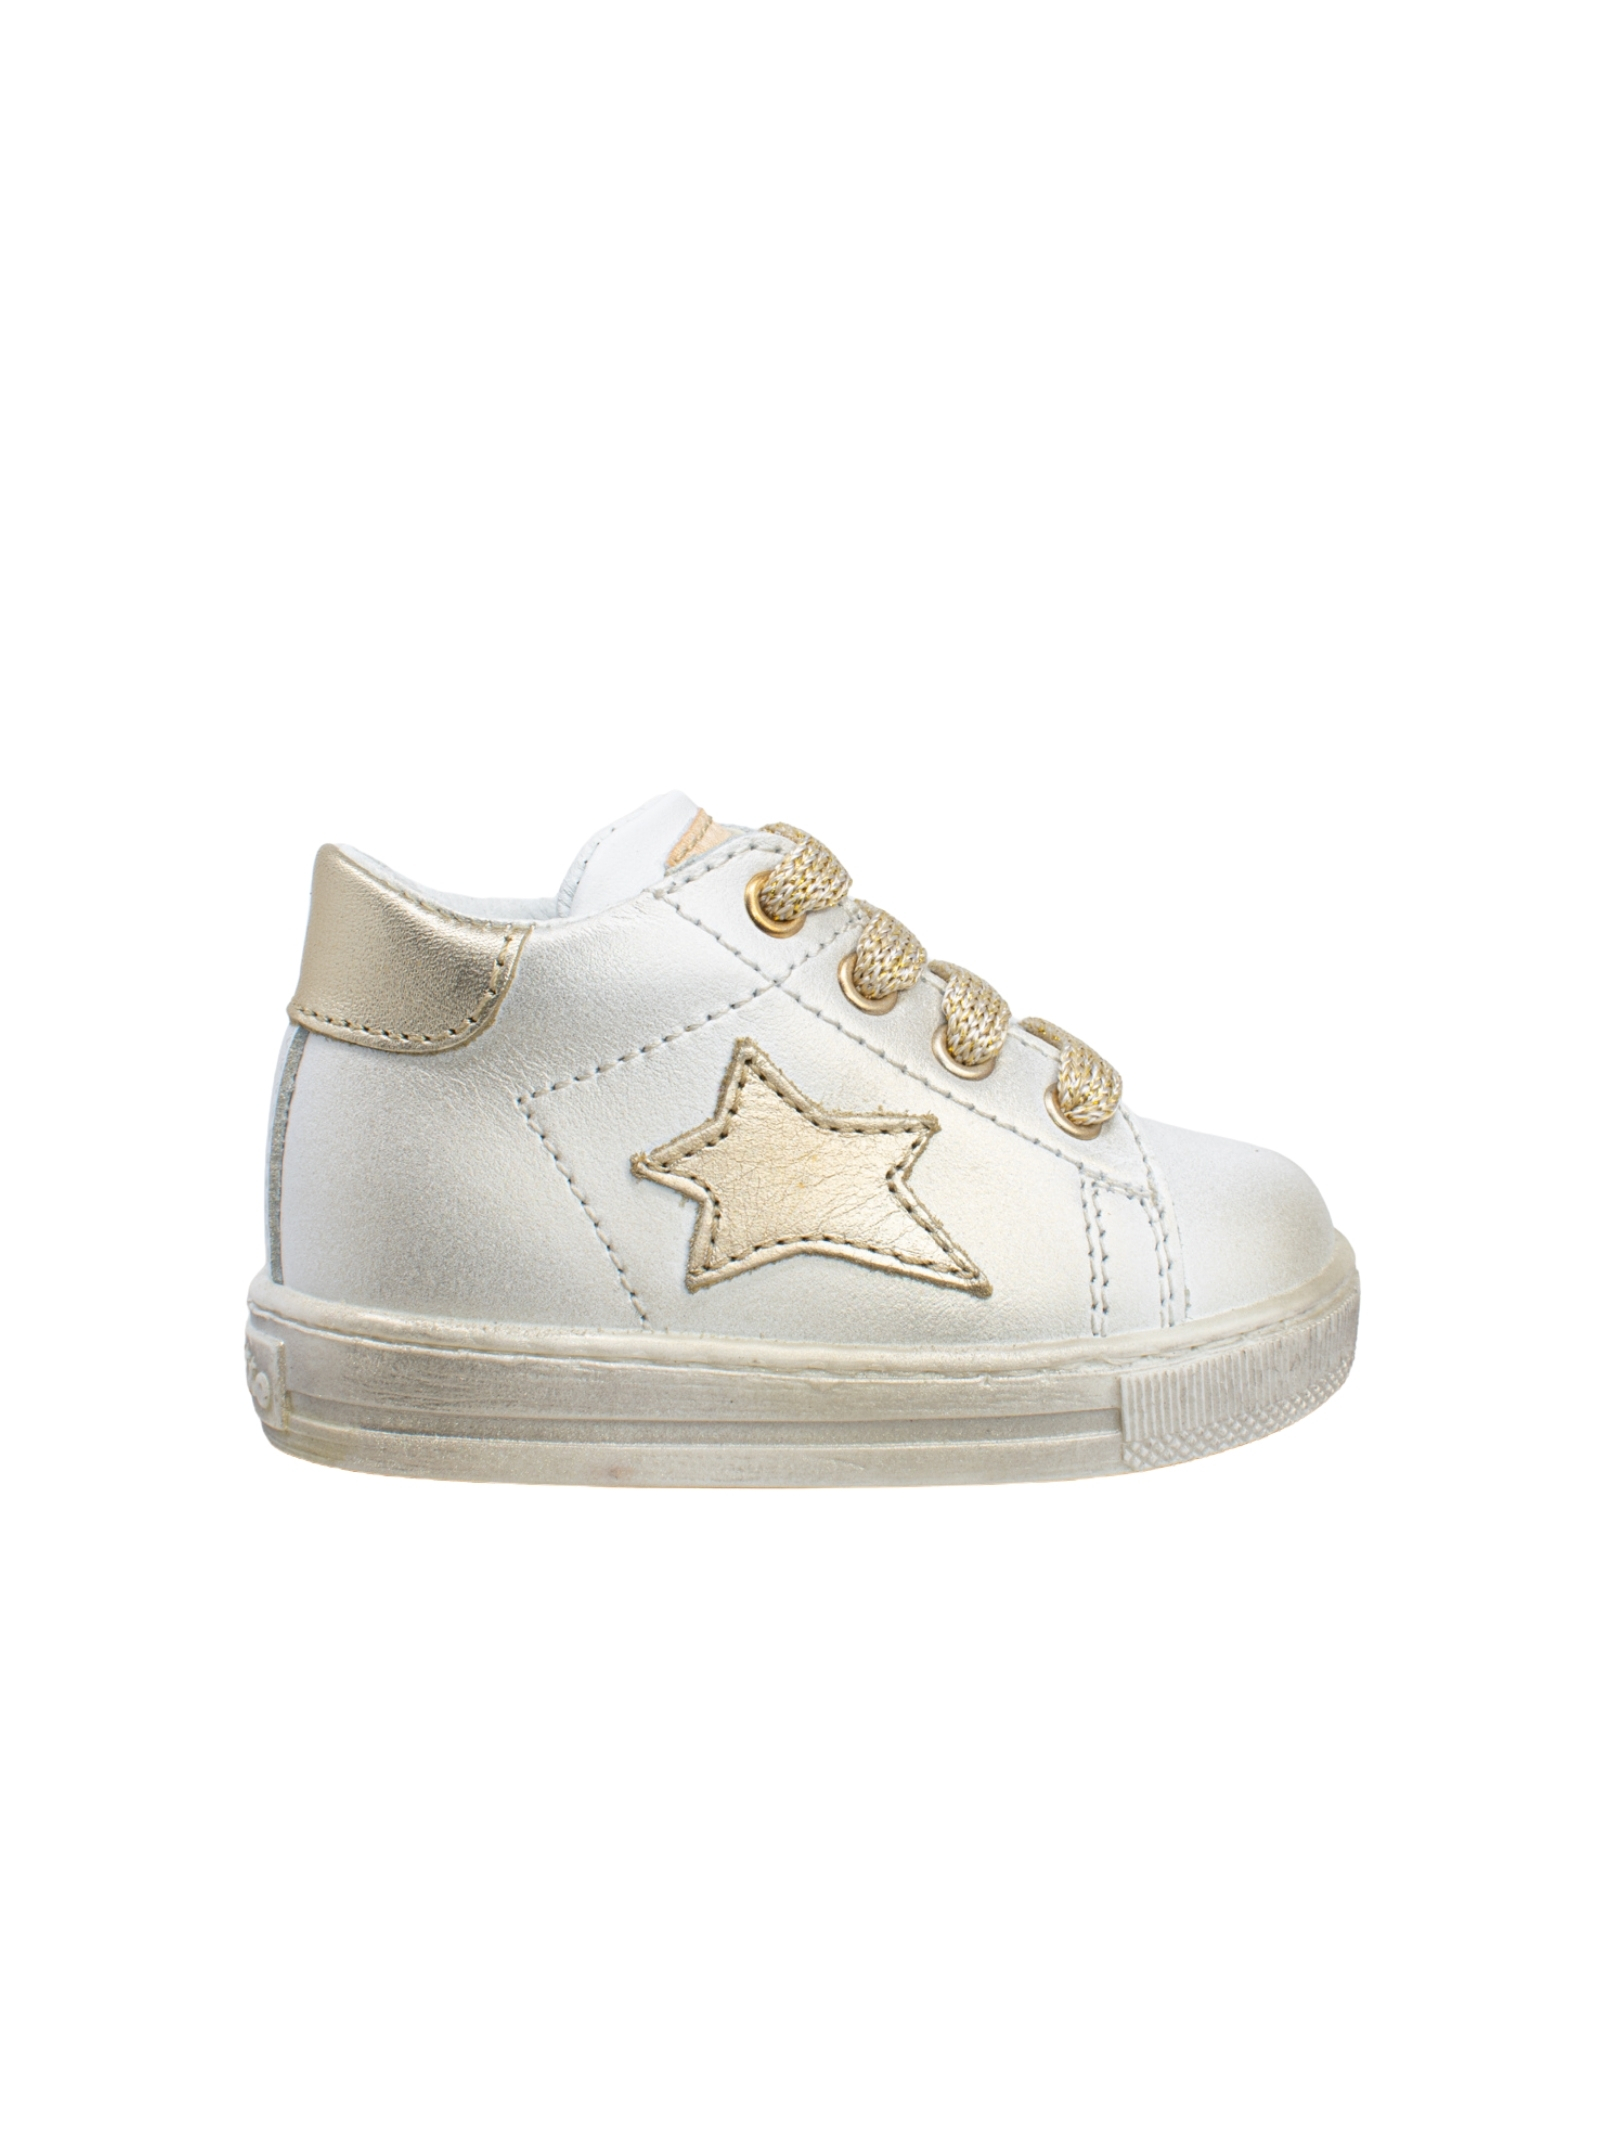 Sneakers Shade FALCOTTO | Sneakers | 20153151N03